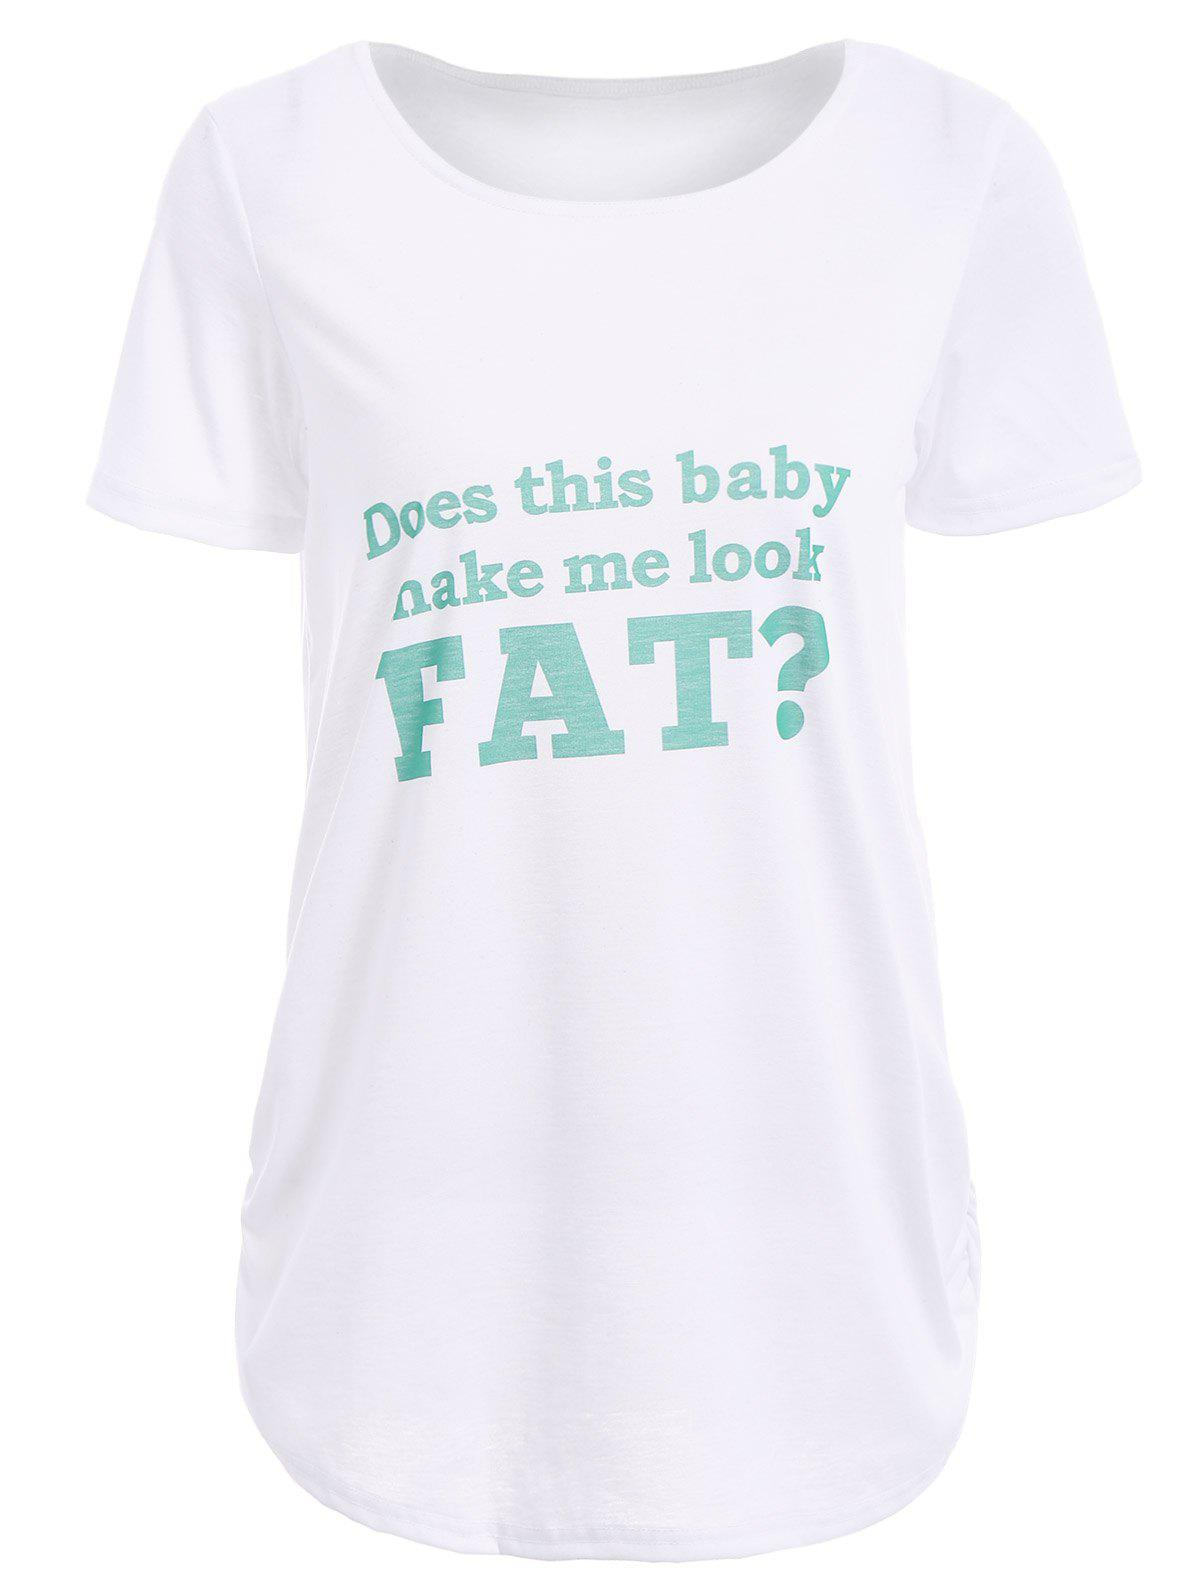 Casual Short Sleeve Round Neck Green Letter Print Women's T-Shirt - WHITE/GREEN M